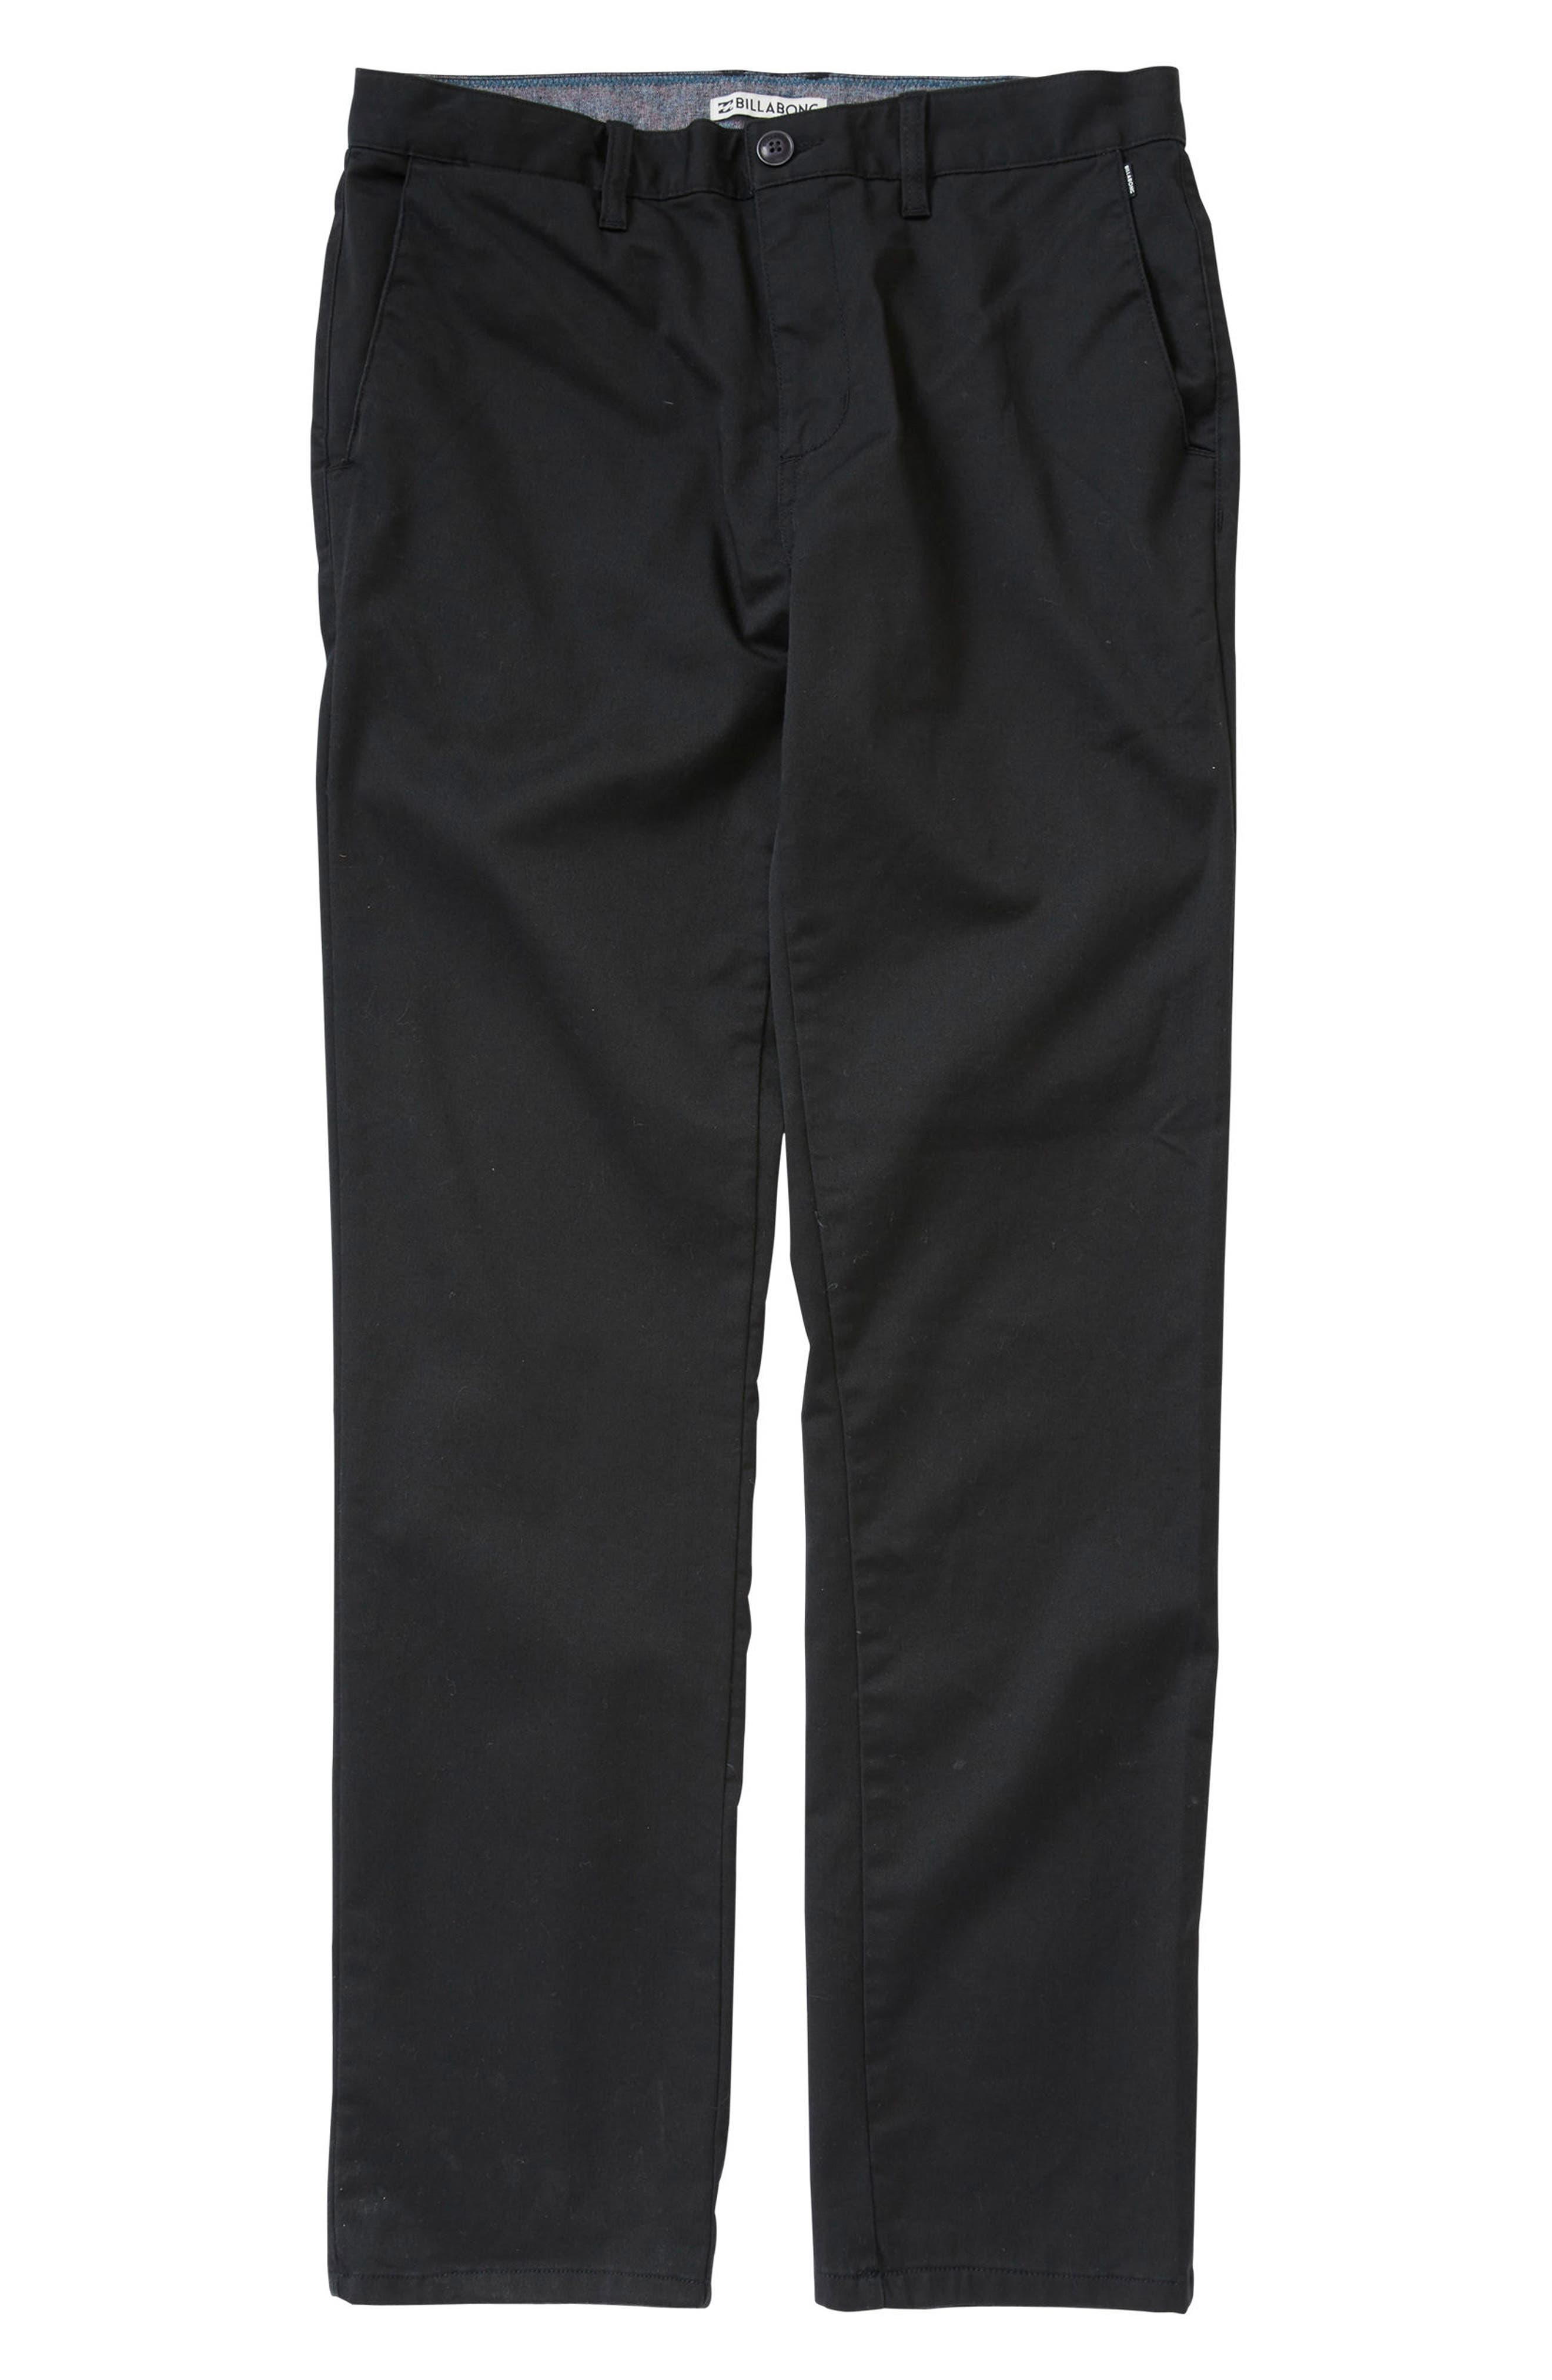 Alternate Image 1 Selected - Billabong Carter Chinos (Toddler Boys & Little Boys)